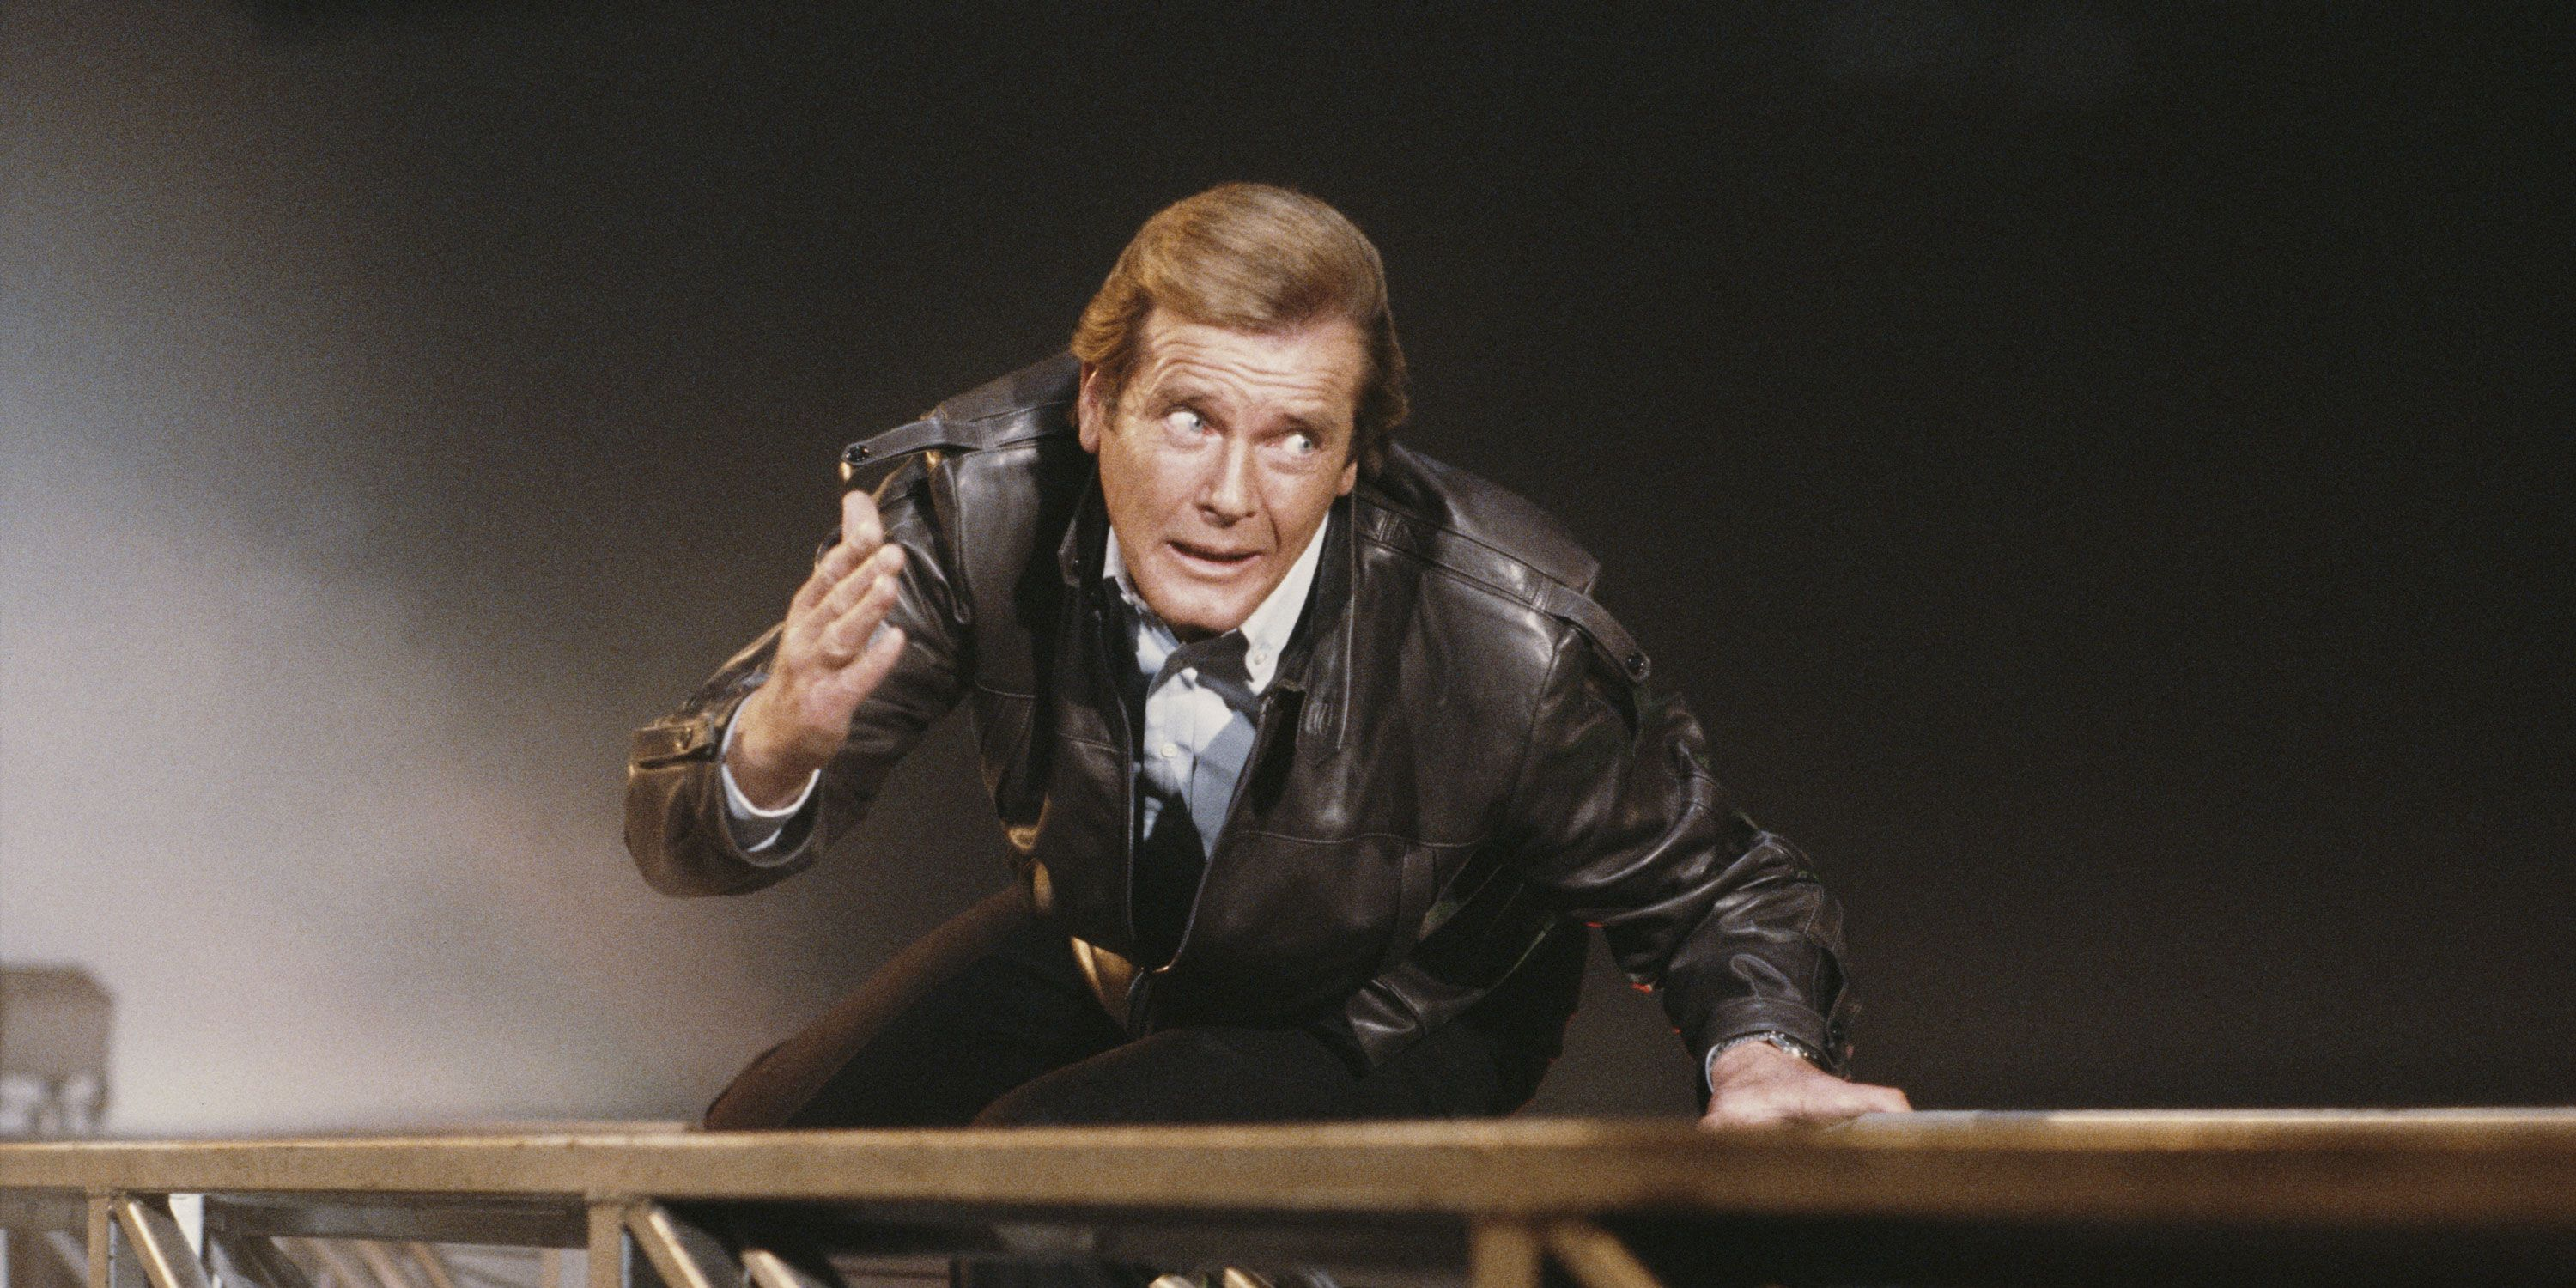 Sir Roger Moore, James Bond, A View To Kill